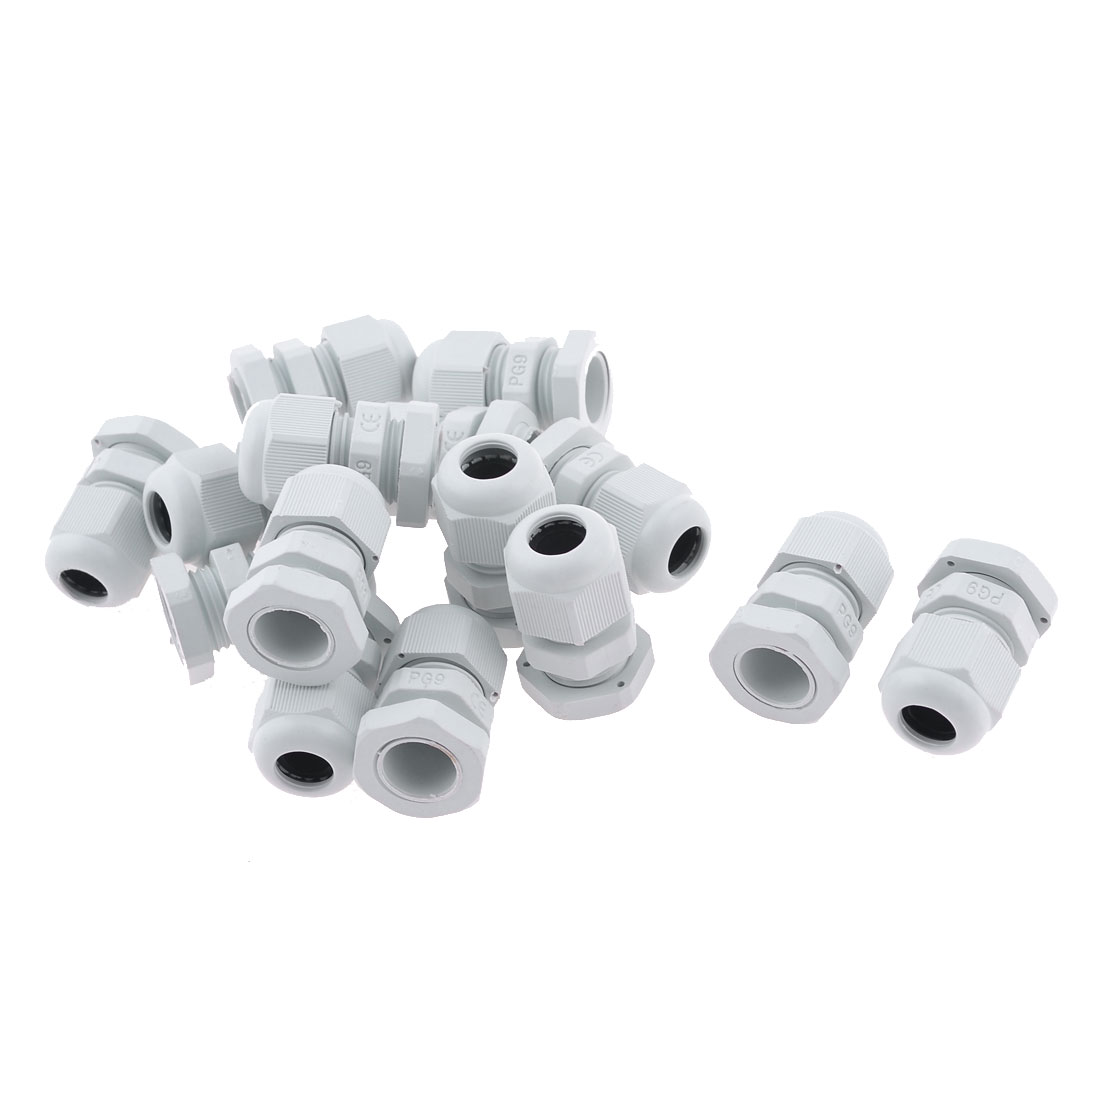 White Plastic 4-8mm Cables PG9 Waterproof Cable Connectors 15 Pcs